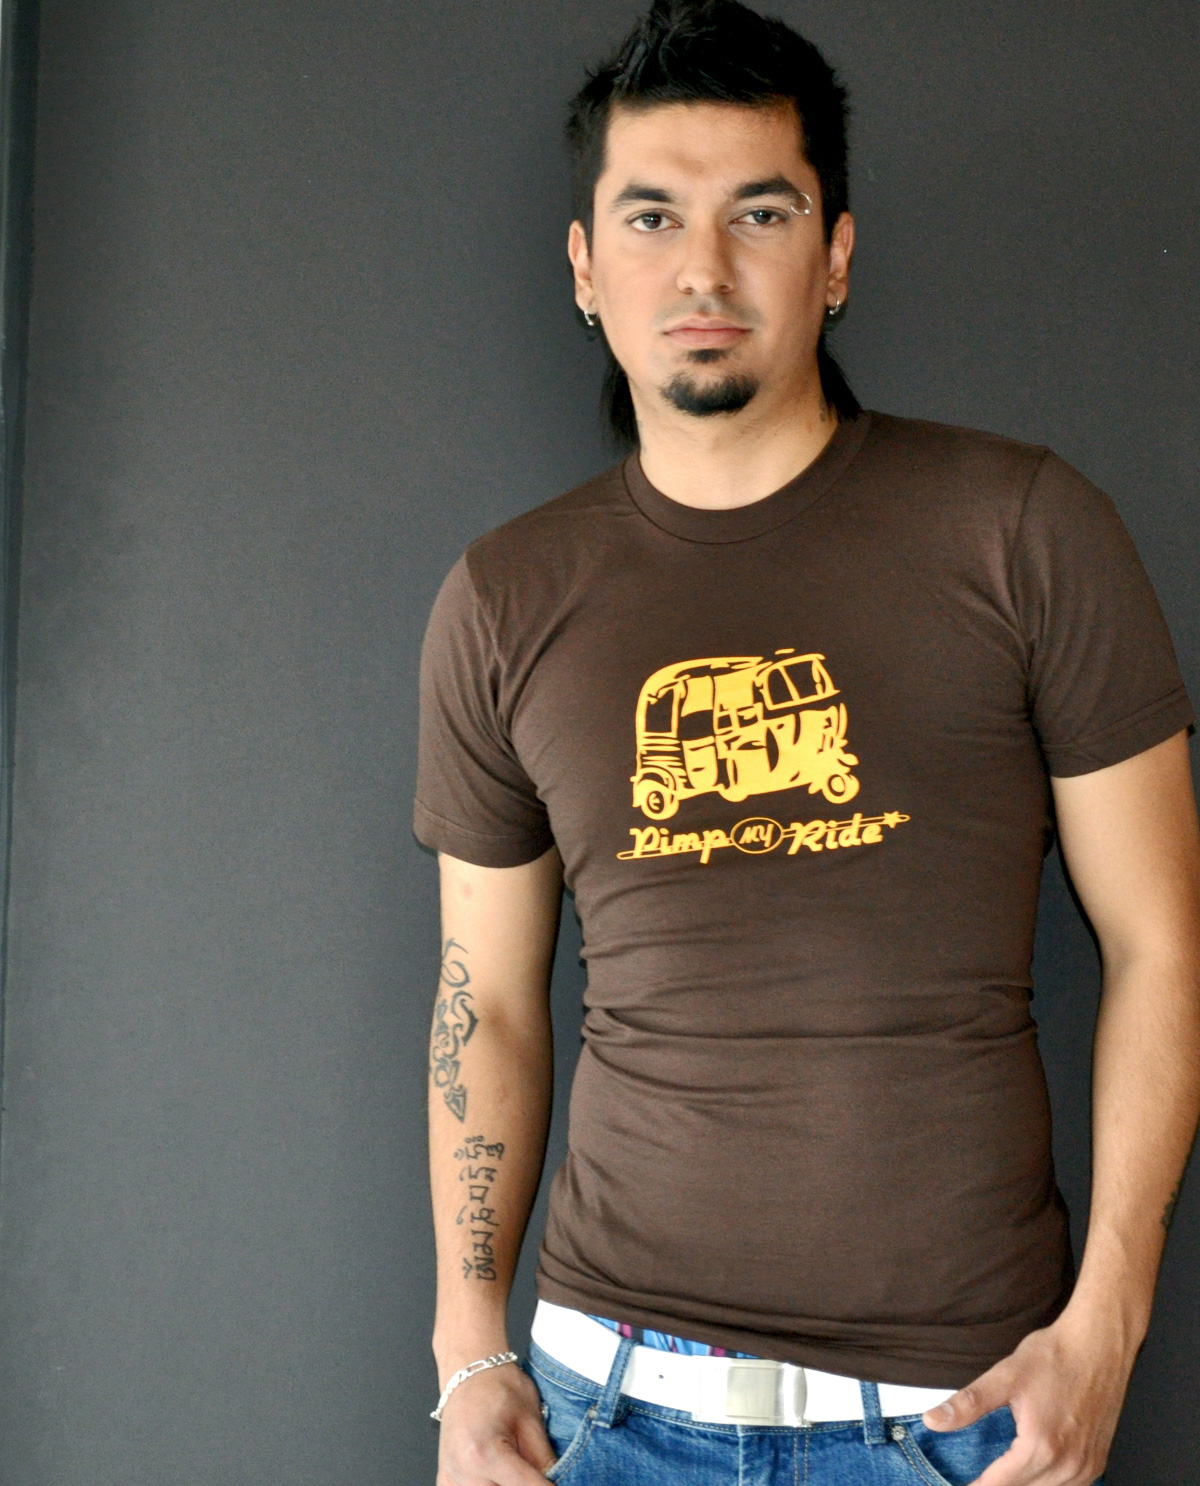 South Asian male model wearing Pimp My Ride illustrated design printed on SoftStyle brown American Apparel Jersey T.shirt fitted t.shirt. South Asian Desi Themed Graphic Design t.shirts by Brown Man Clothing Co.